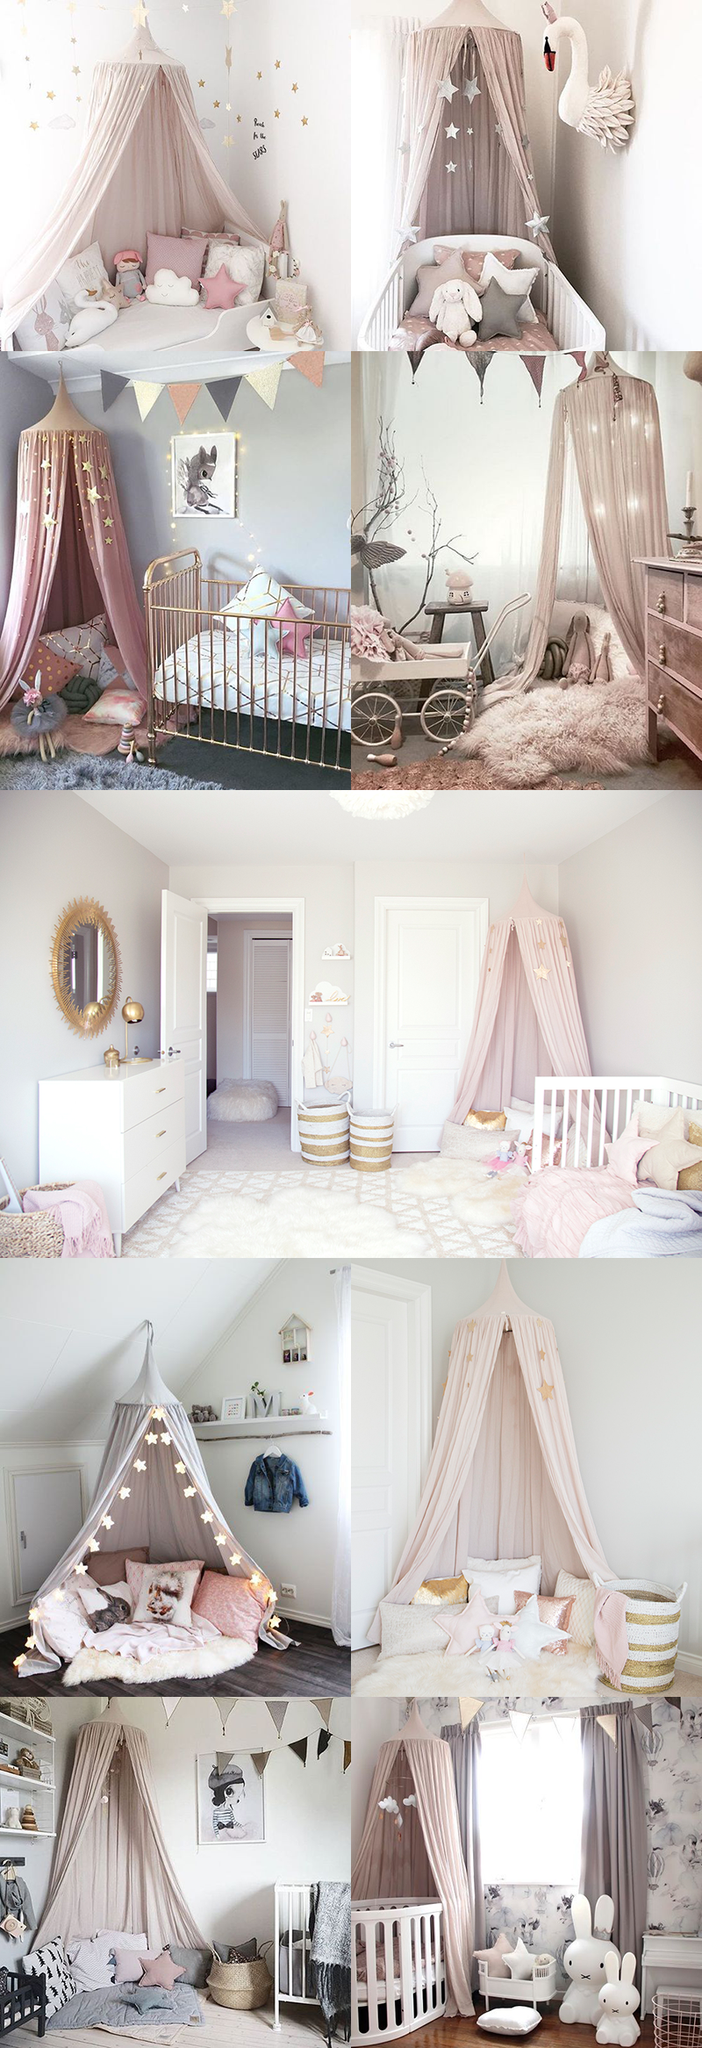 Best Kids And Baby Room Decor Ideas Magical Pink Canopy Tent Light Pink Blush White Gold Baby 400 x 300